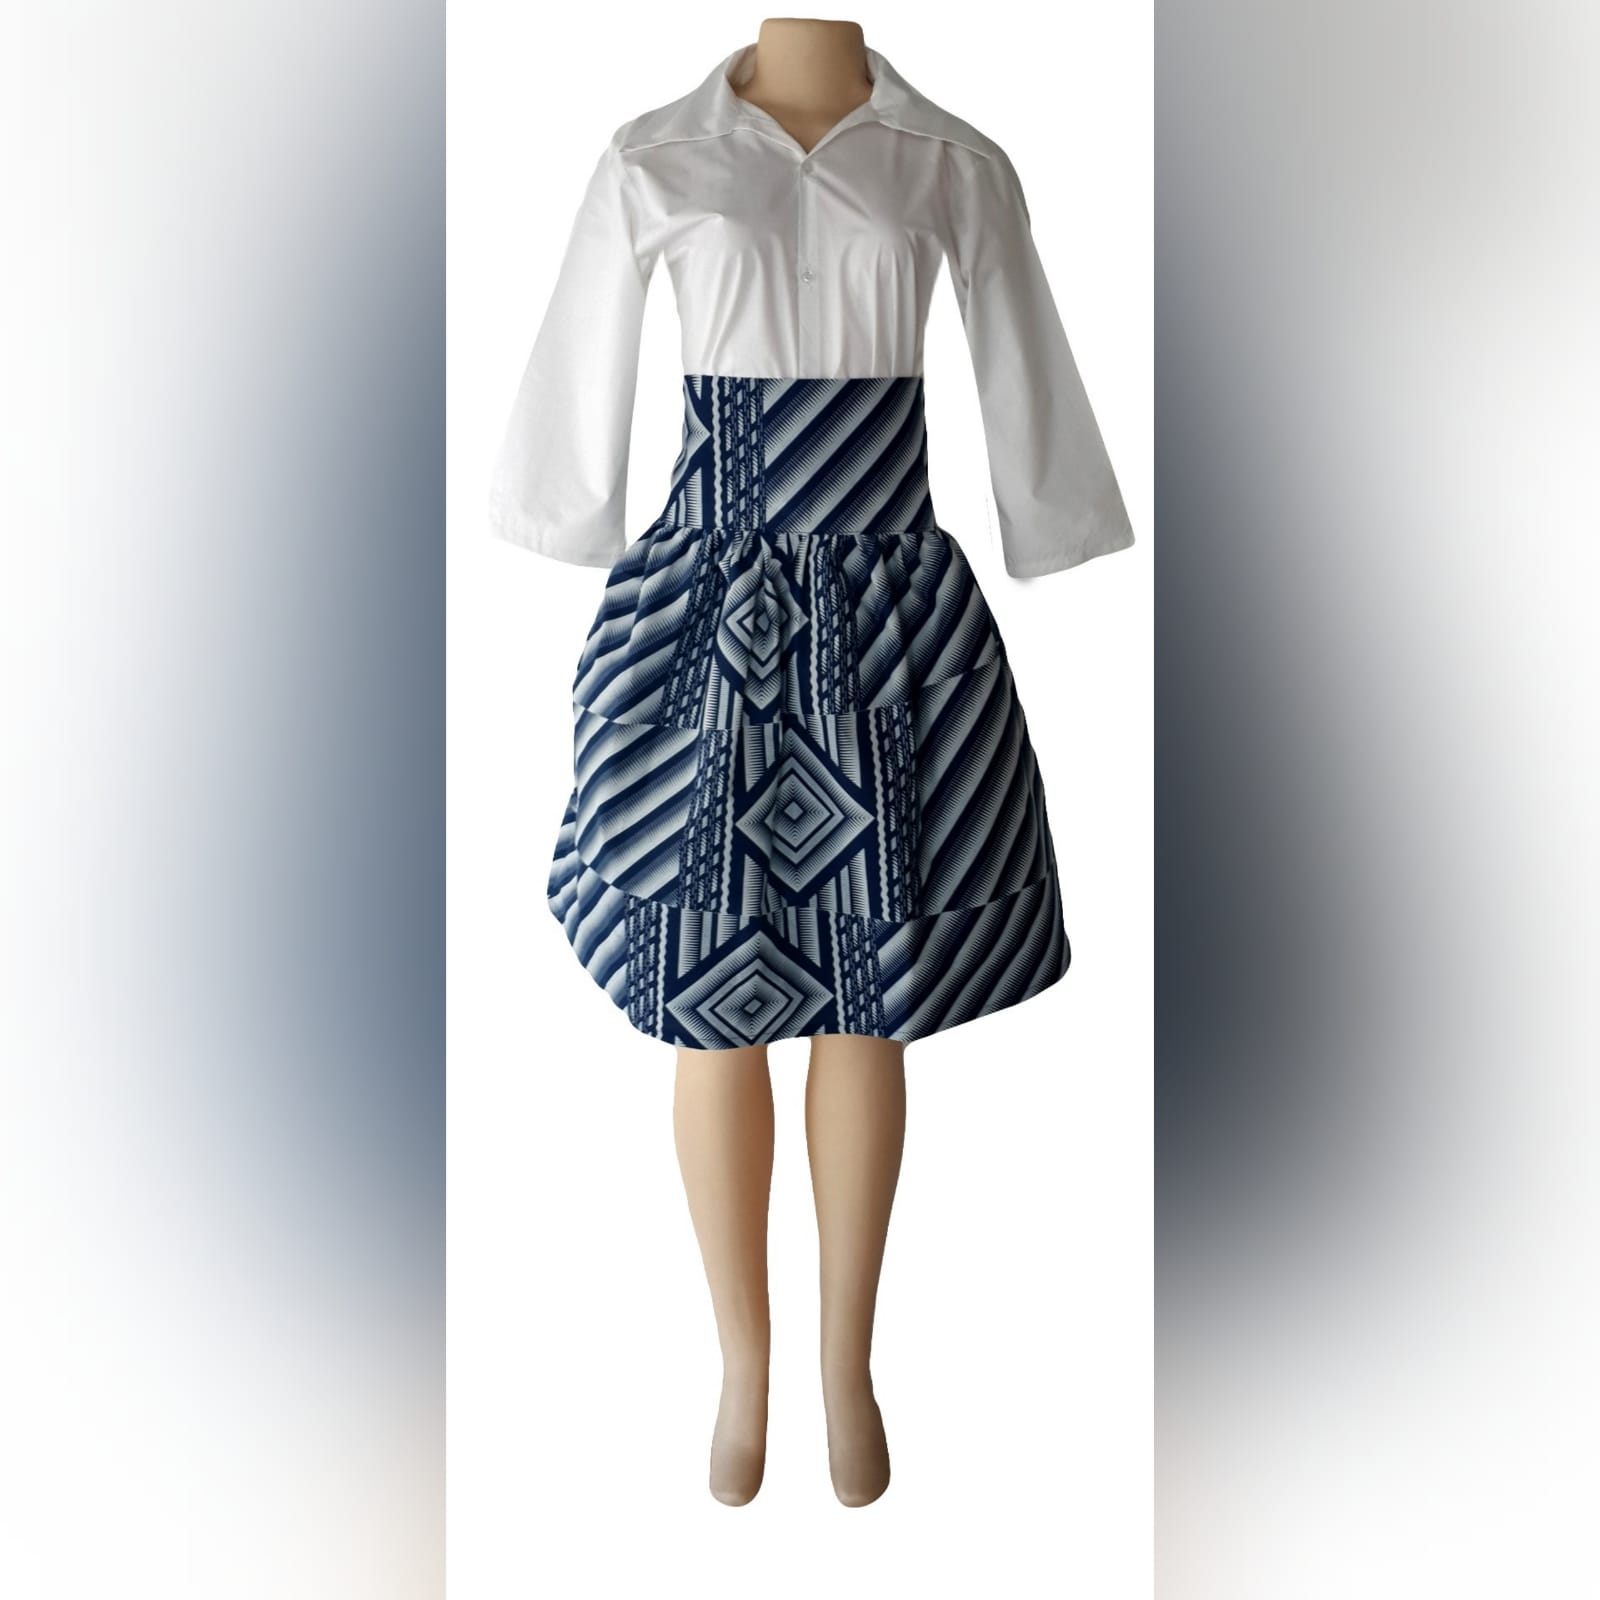 Matching couples traditional shweshwe wedding attire 3 lady: high waisted gathered traditional skirt with white 3/4 sleeve blouse. Gent: trousers and shirt with detailed collar, cuffs and elbow patches. Traditional wedding attire.